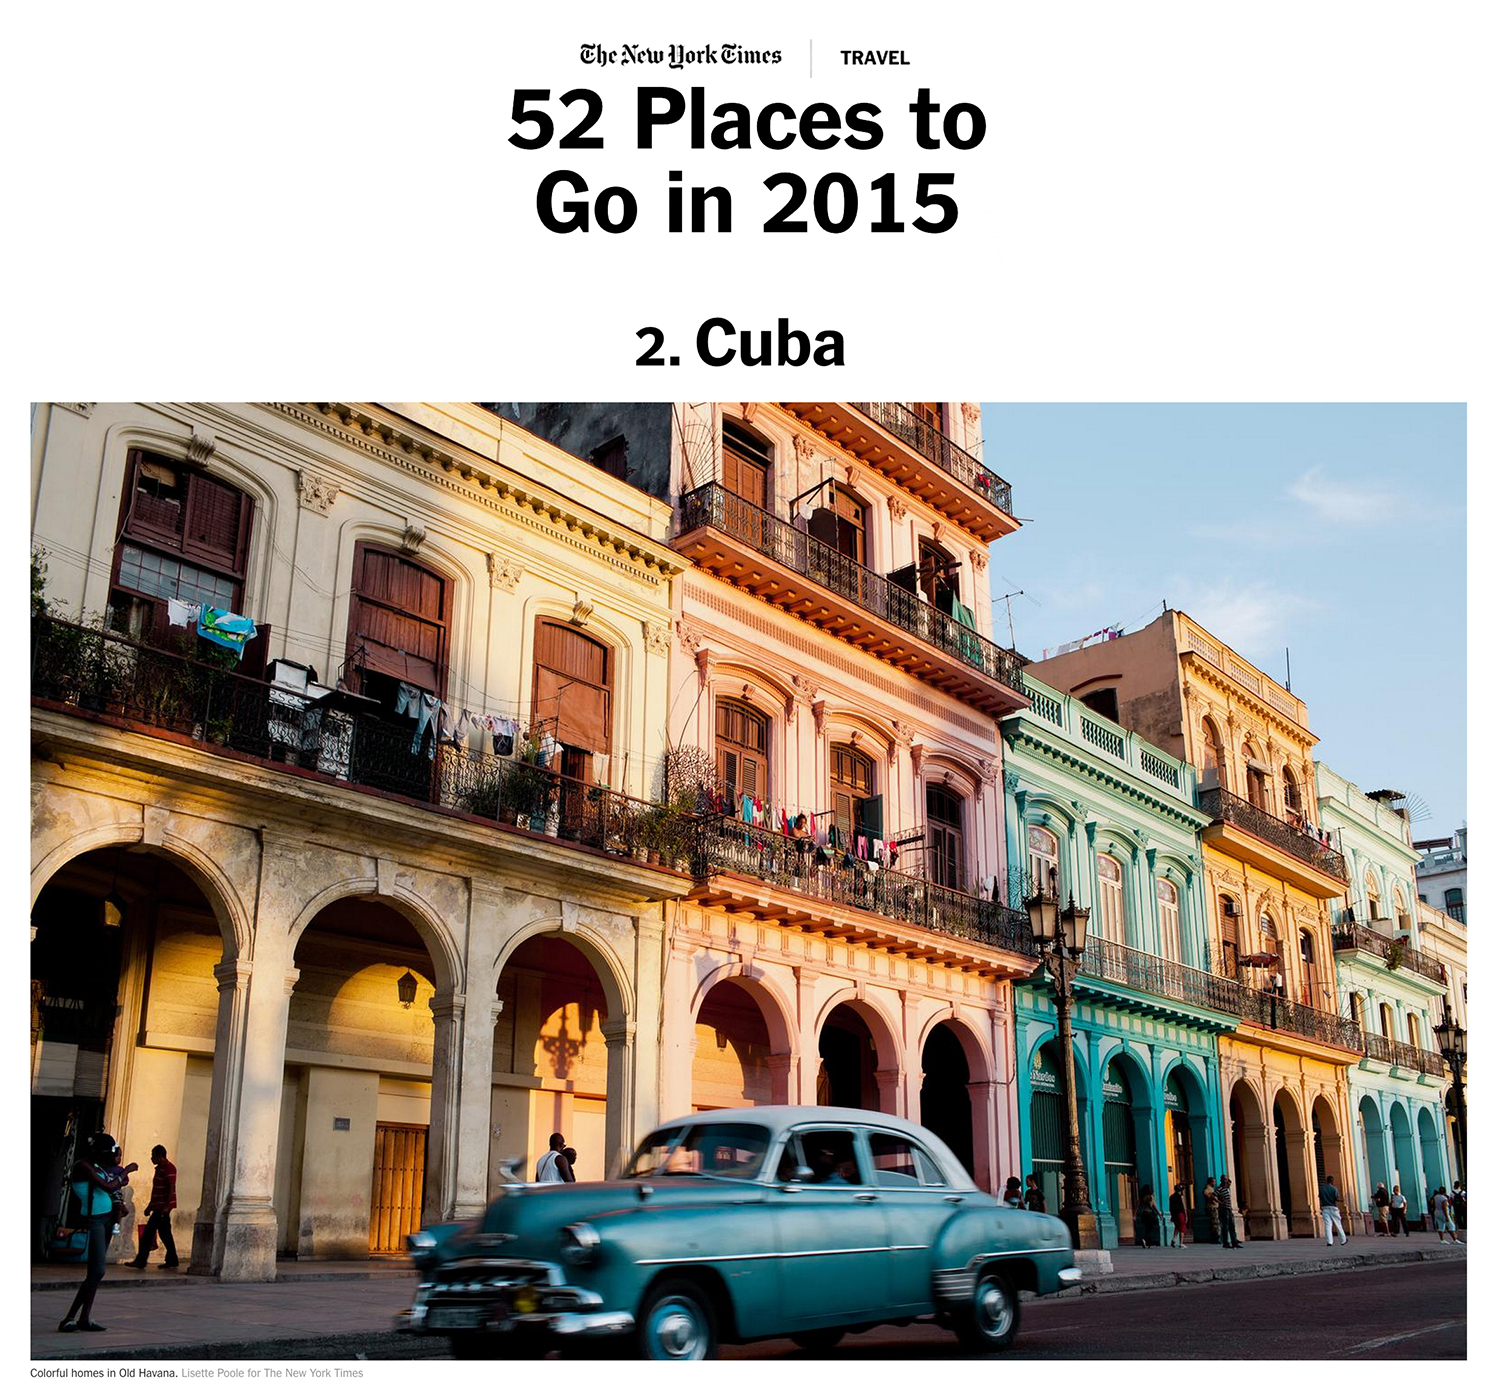 New York Times - 52 Places.jpg